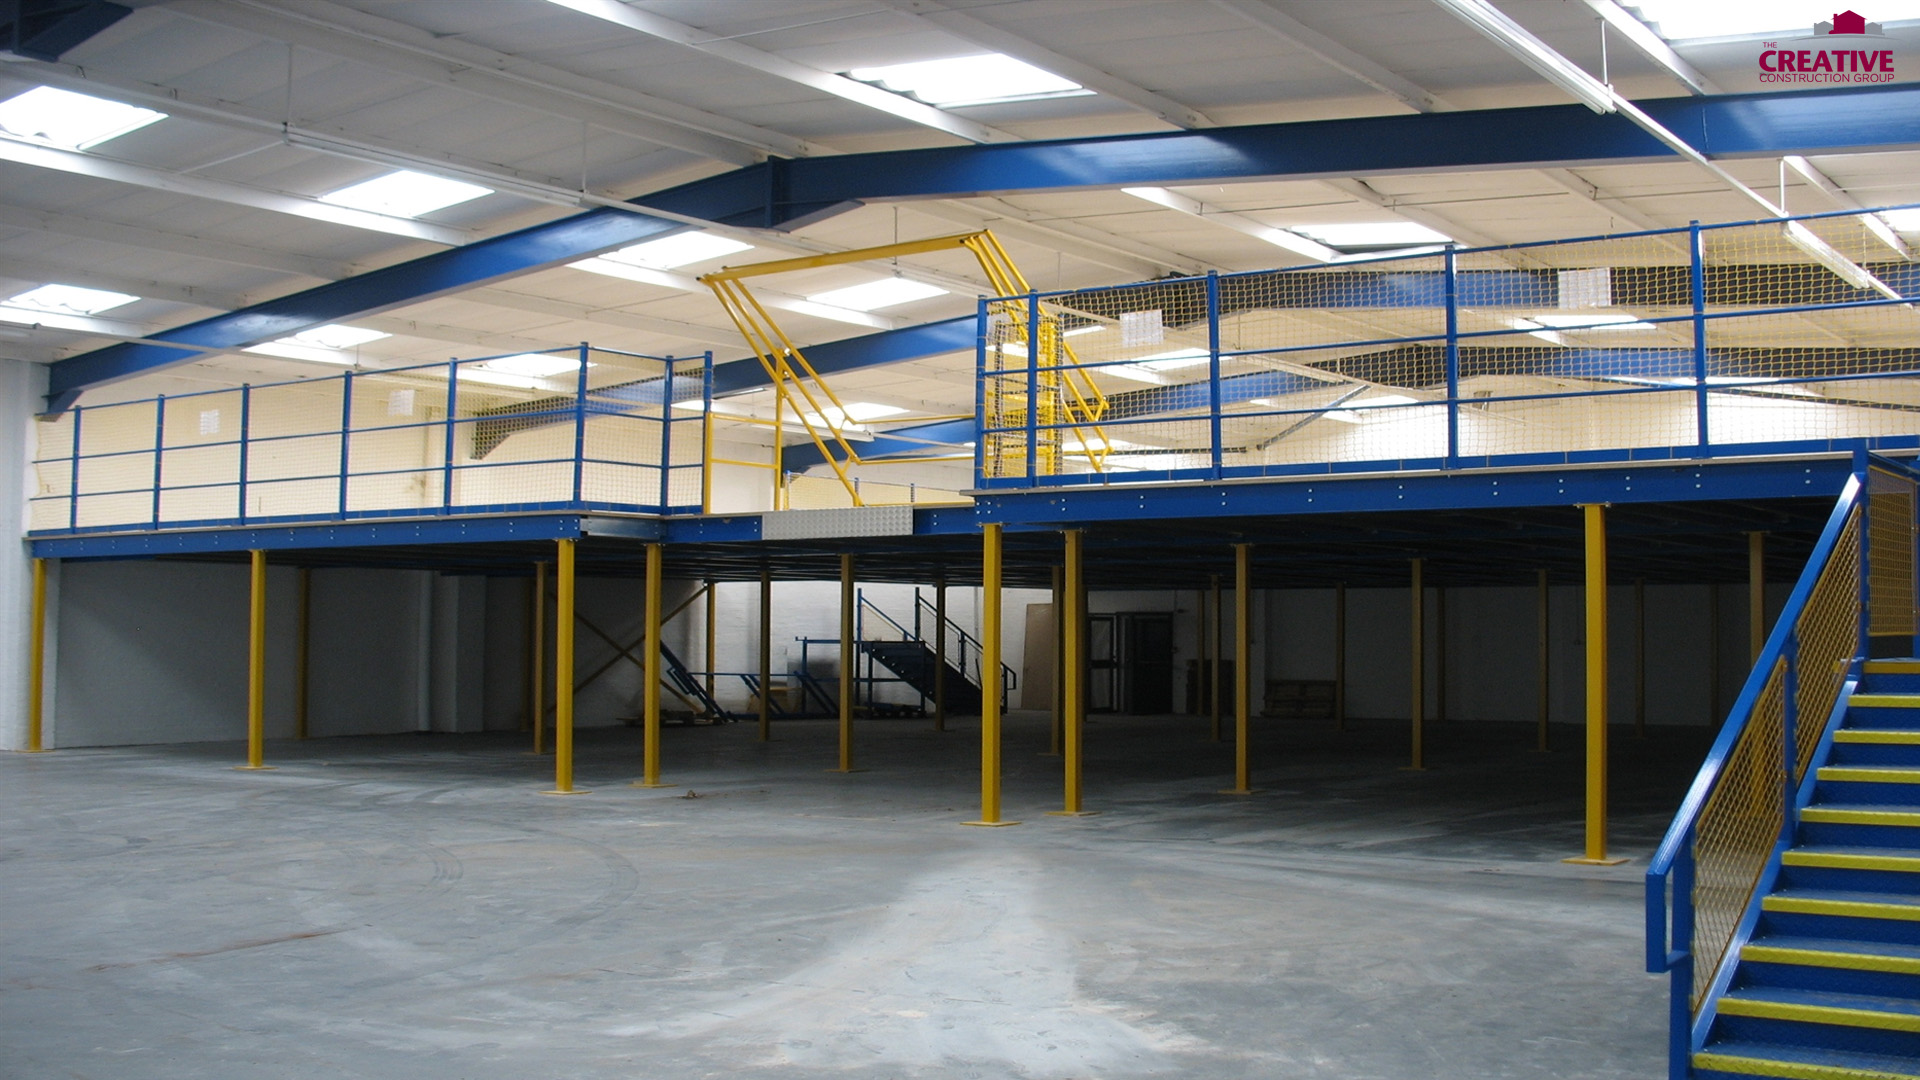 Mezzanine Floor - The Creative Construction Group